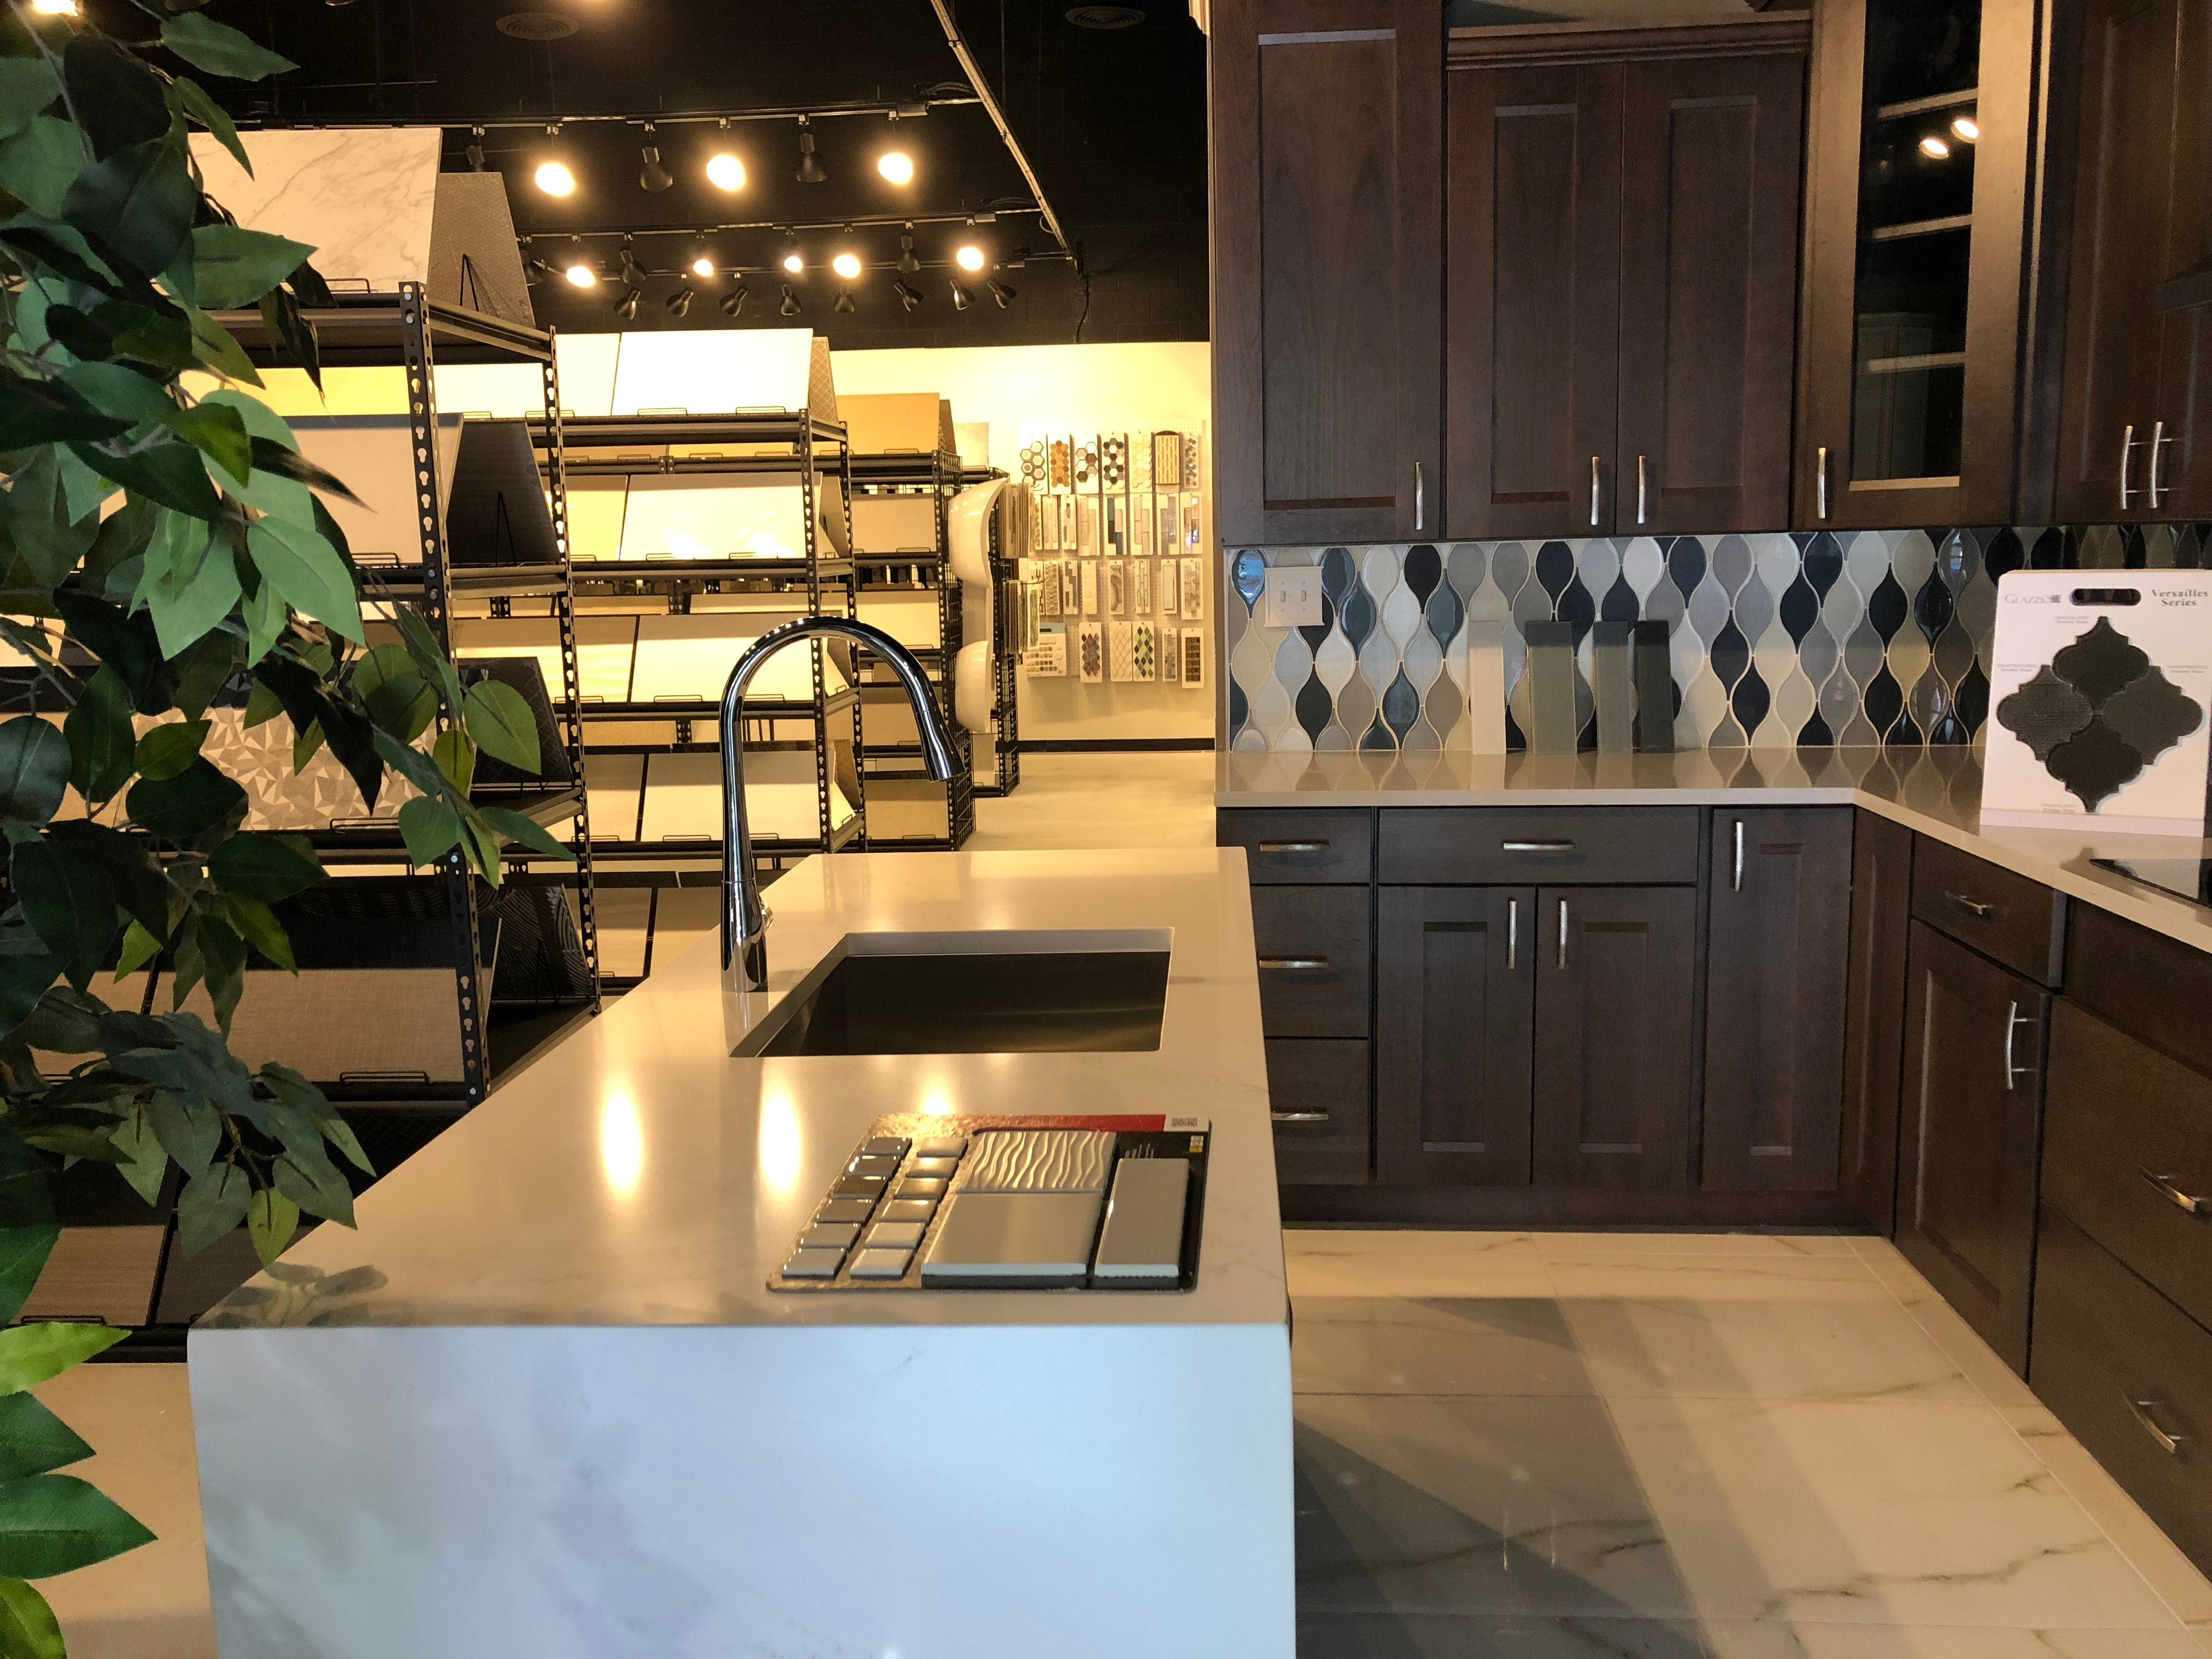 We Are Open Today Visit Our Showroom Kitchen And Bathroom Remodeling In Chant Kitchen And Bath Showroom Kitchen And Bath Remodeling Kitchen Bathroom Remodel